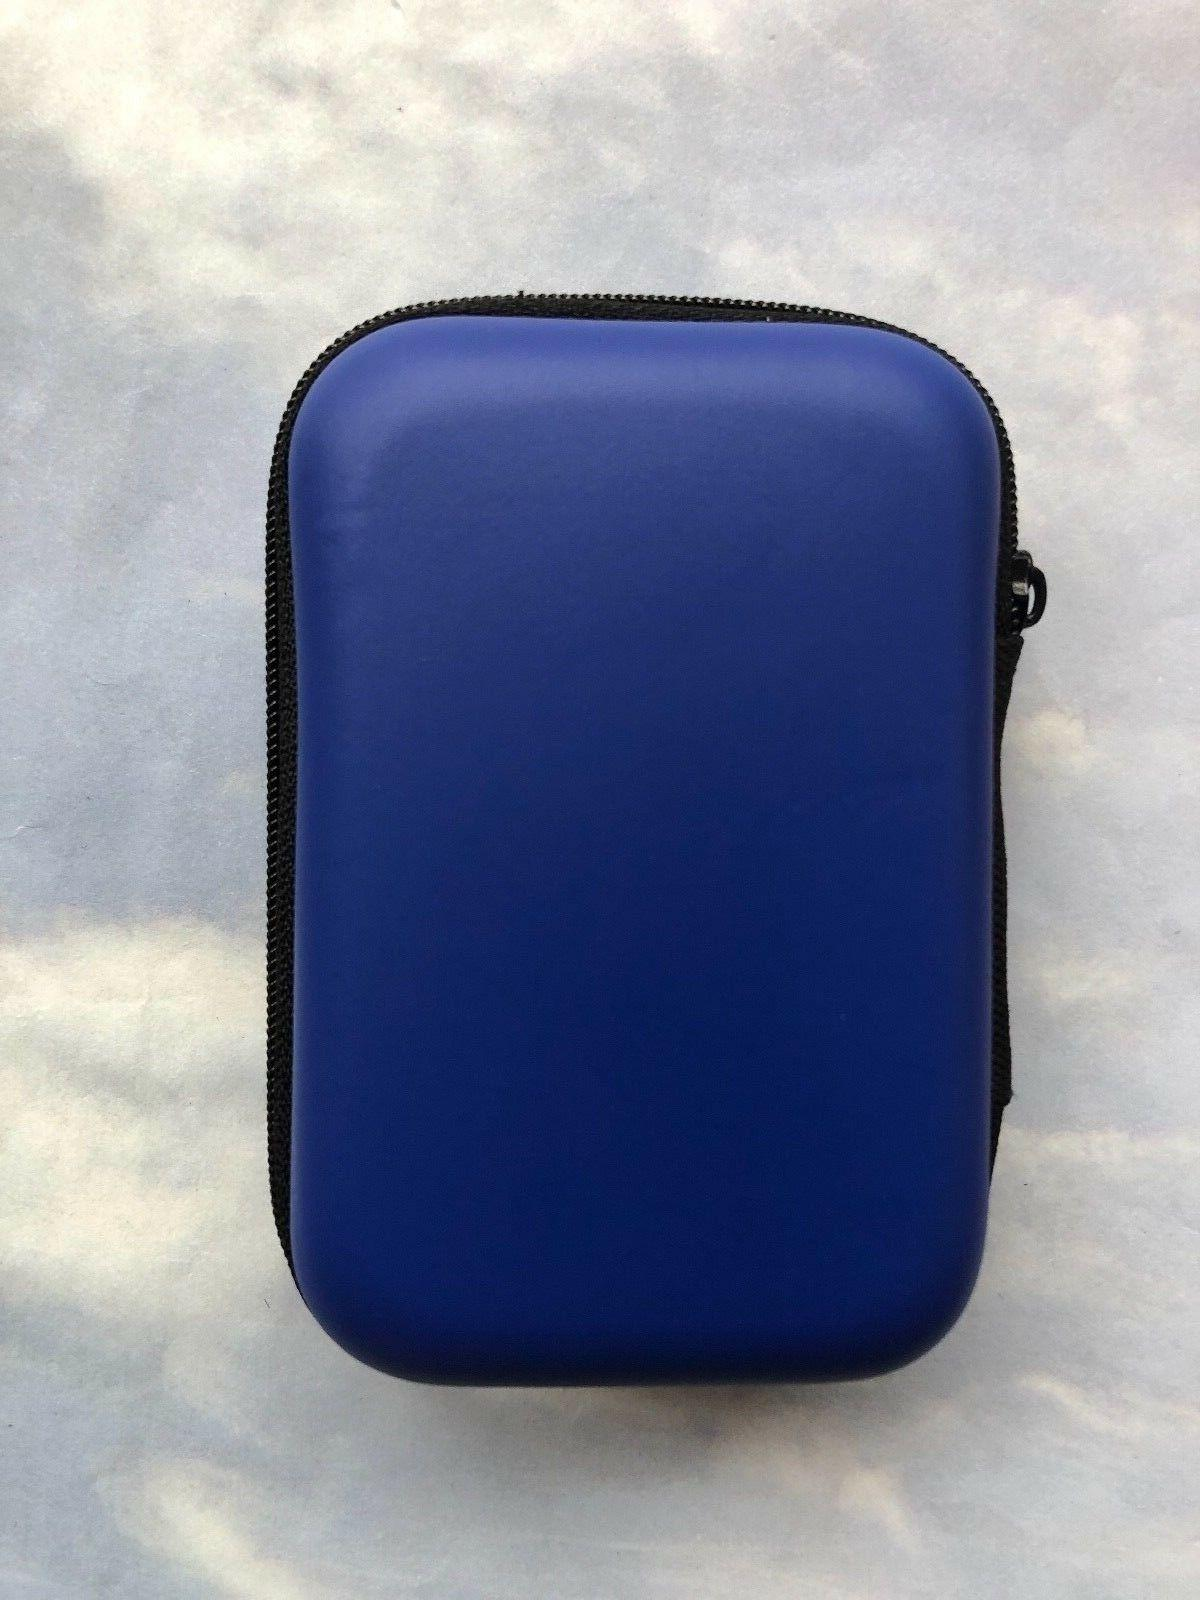 2 Small Earbud Carrying Hard Bag